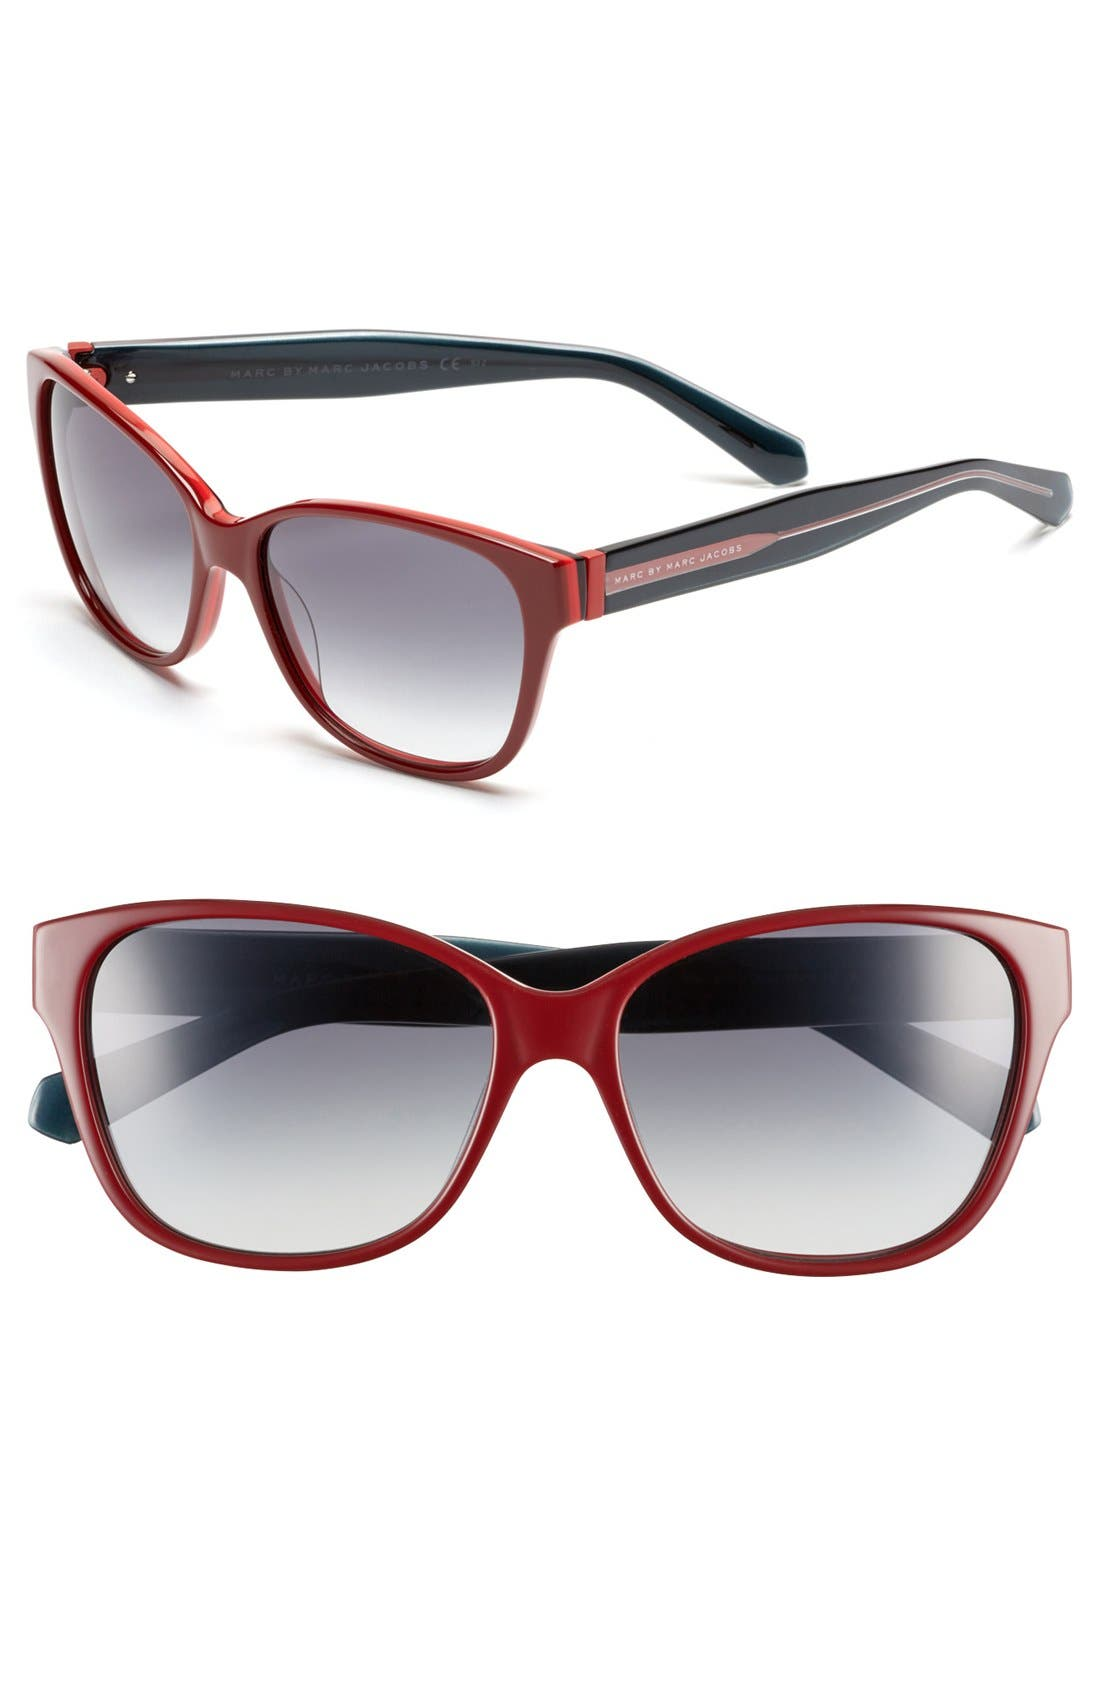 Alternate Image 1 Selected - MARC BY MARC JACOBS 57mm Retro Sunglasses